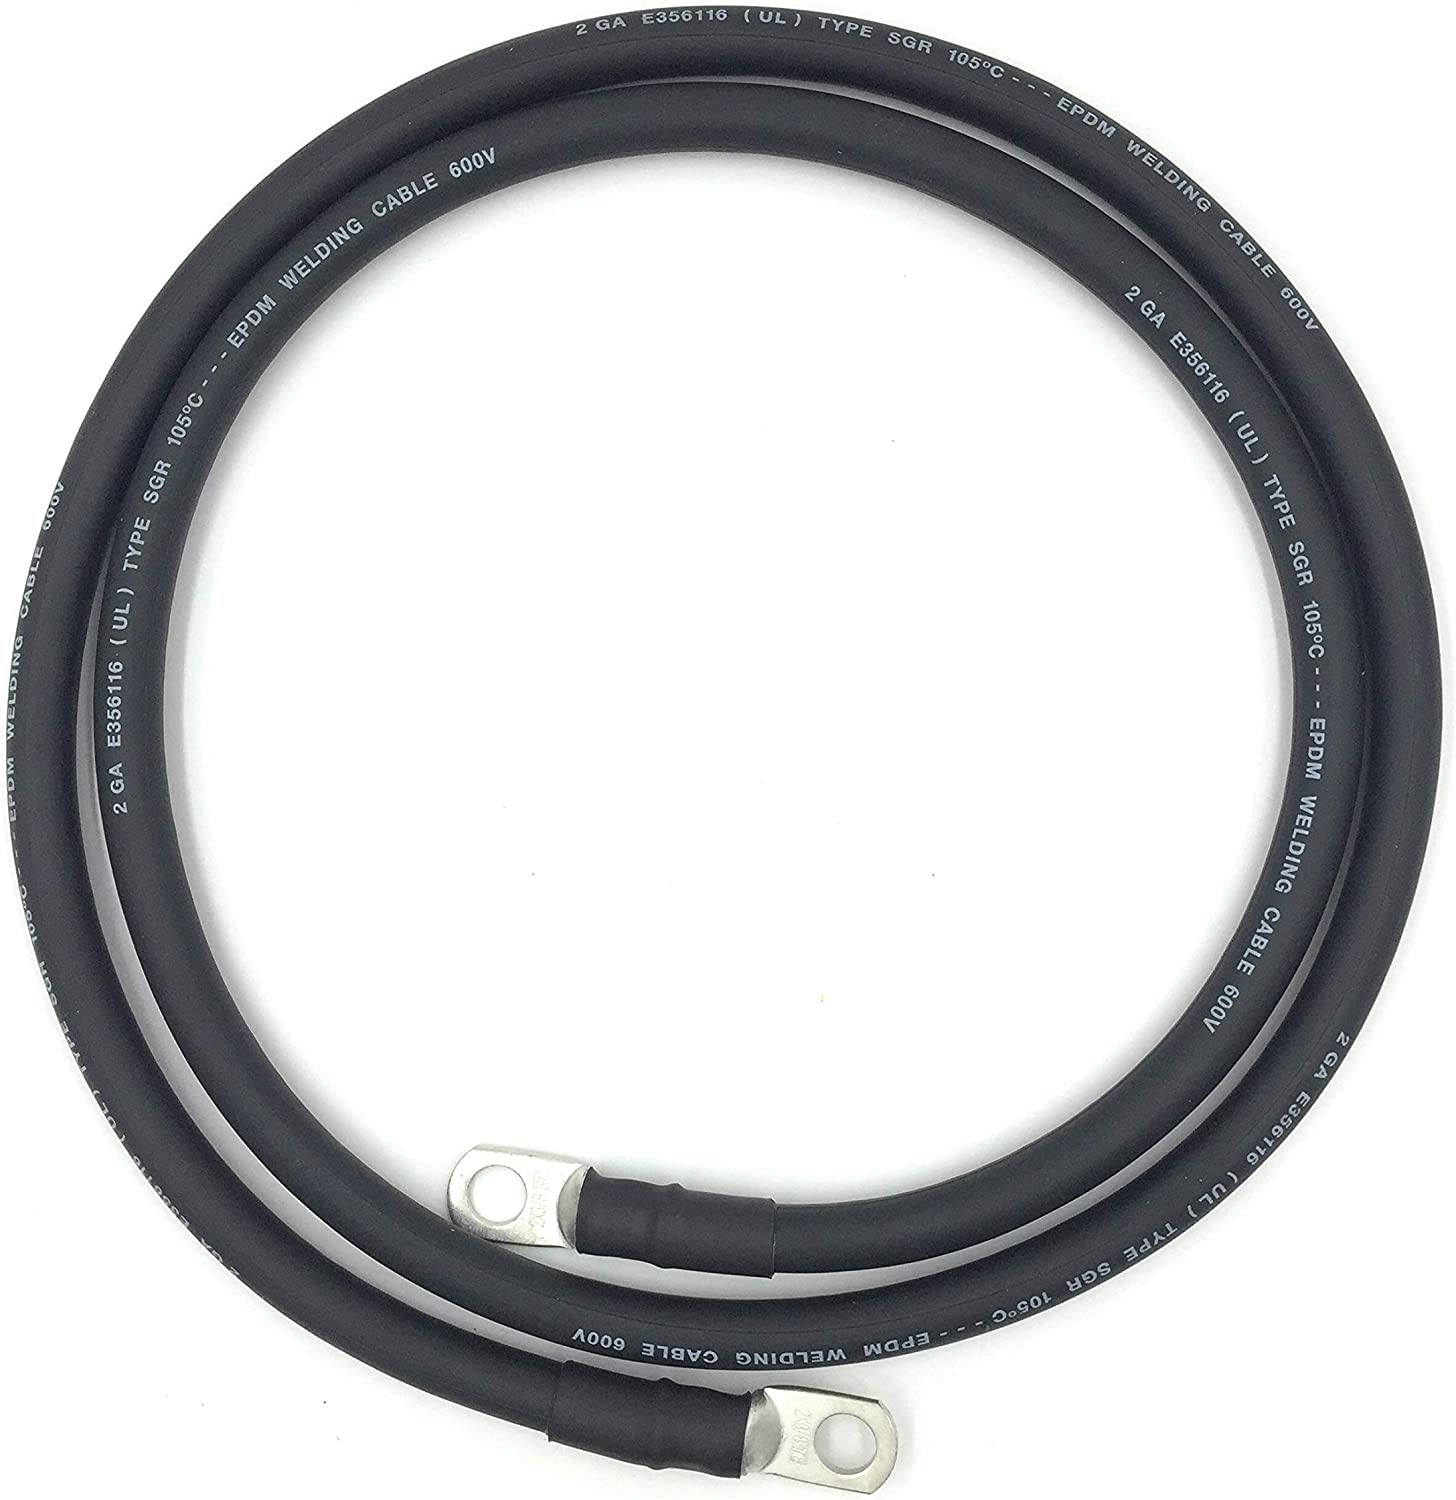 2 AWG Gauge Ultraflex EPDM Low price Fully Assembled i Cables Battery Daily bargain sale Made